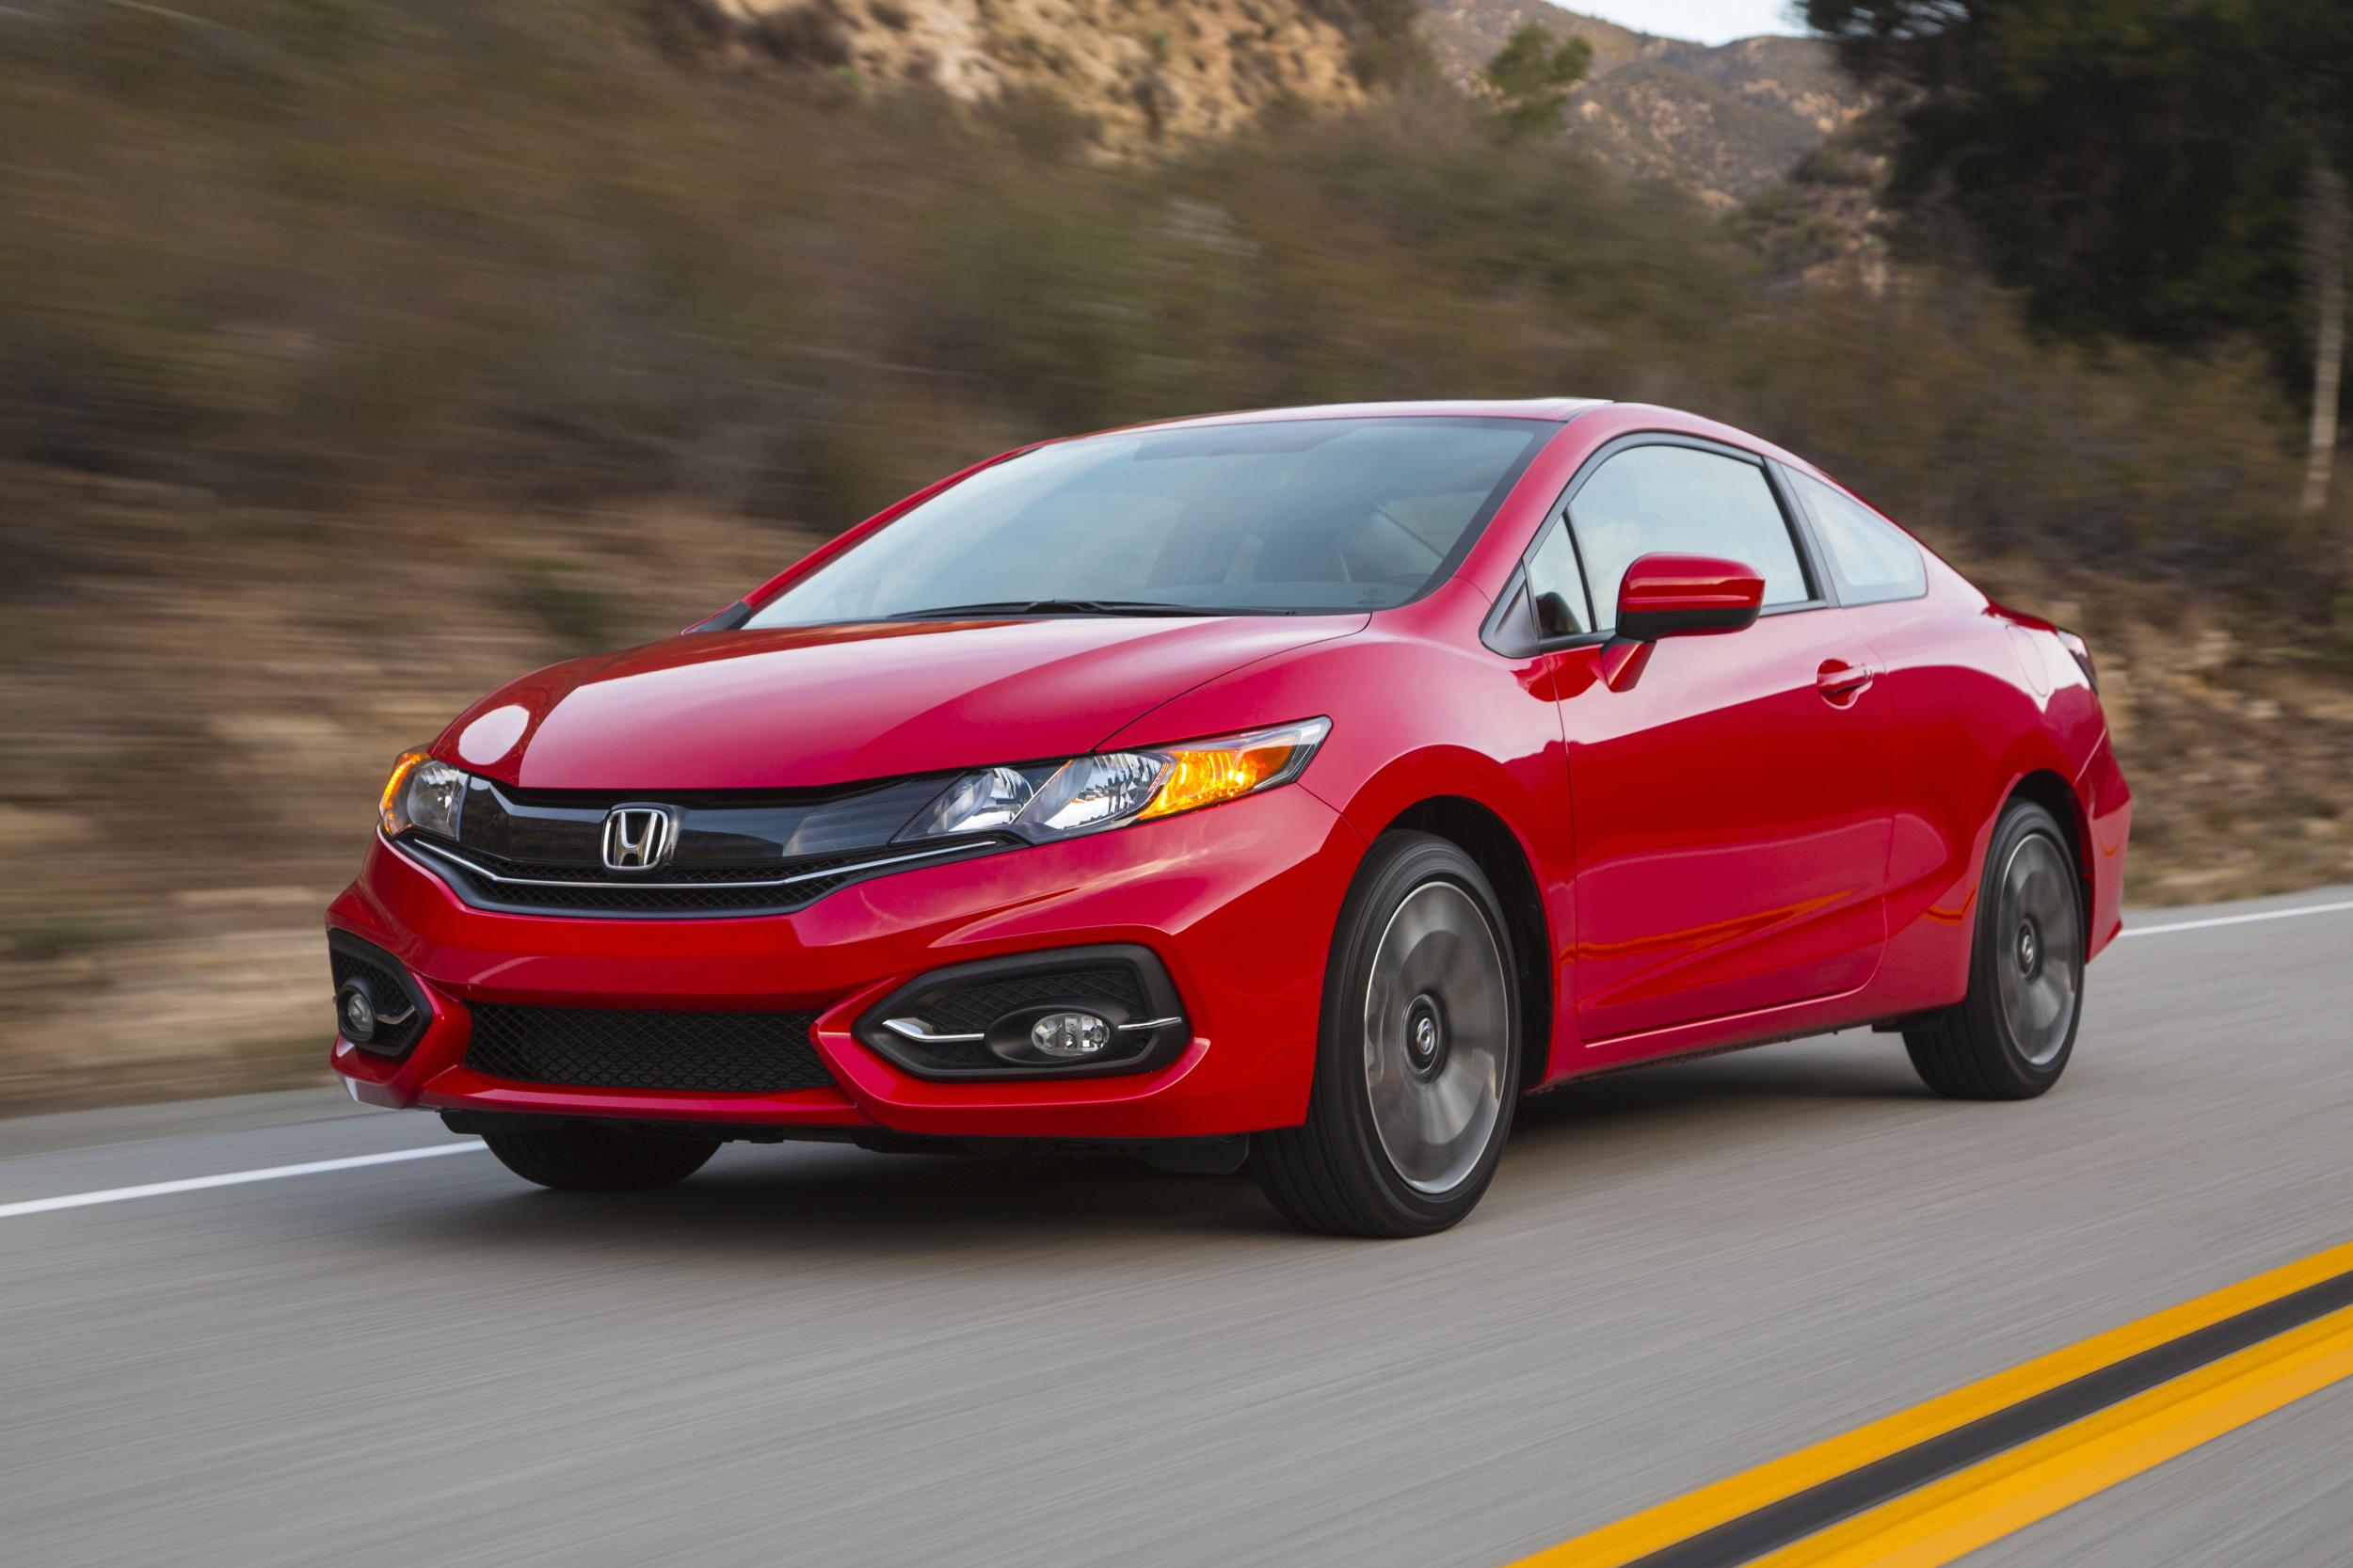 2019 Honda Civic Si Coupe photo - 1